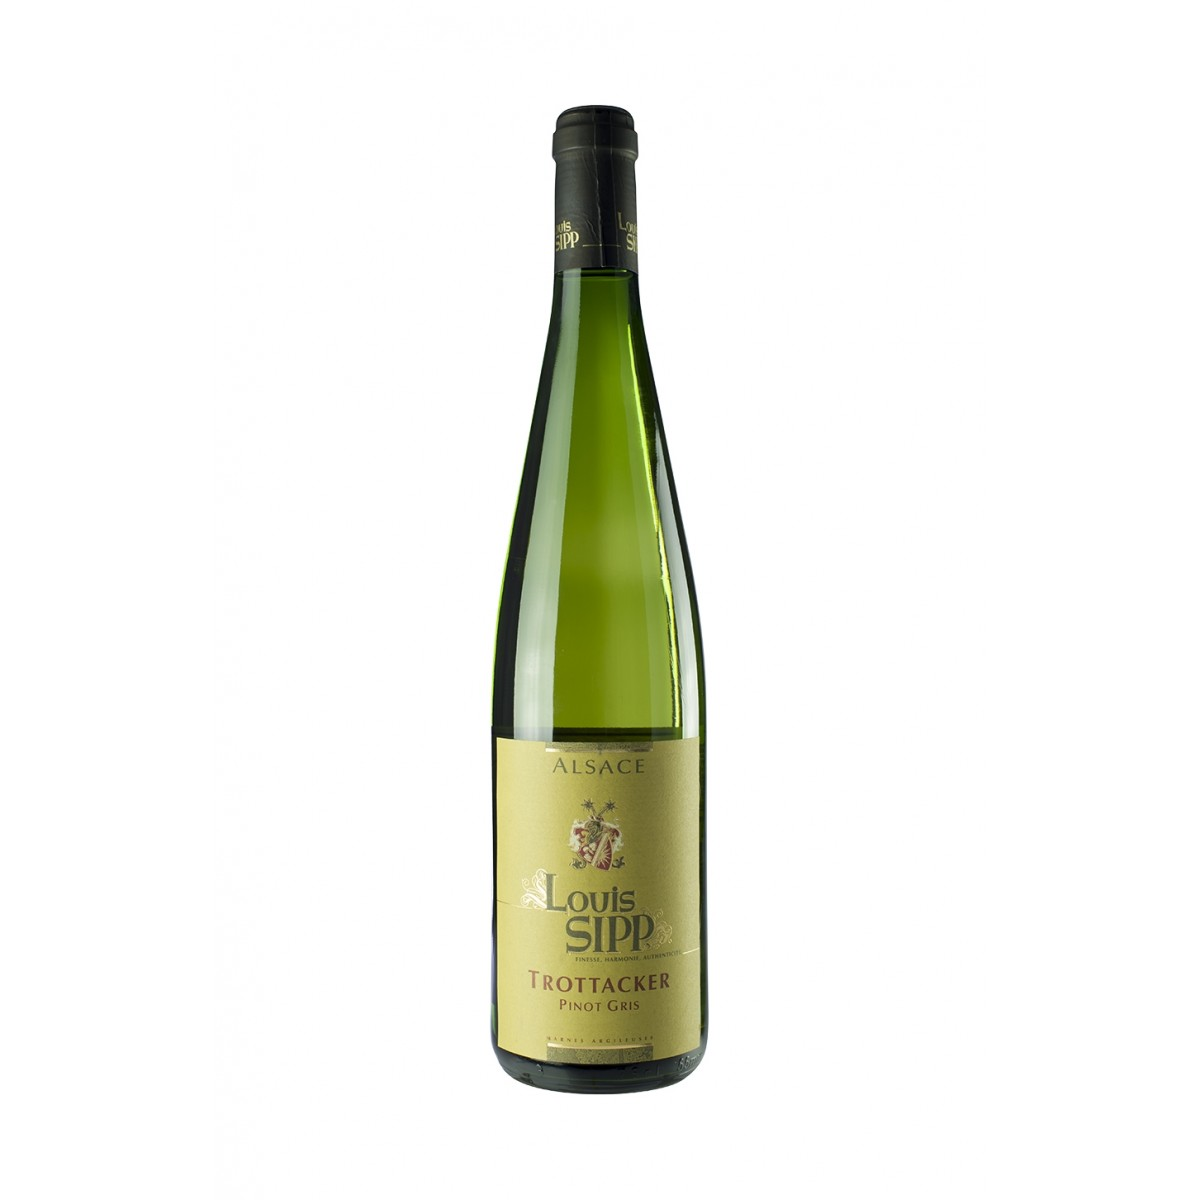 Trottacker Pinot Gris 2012 - Louis Sipp